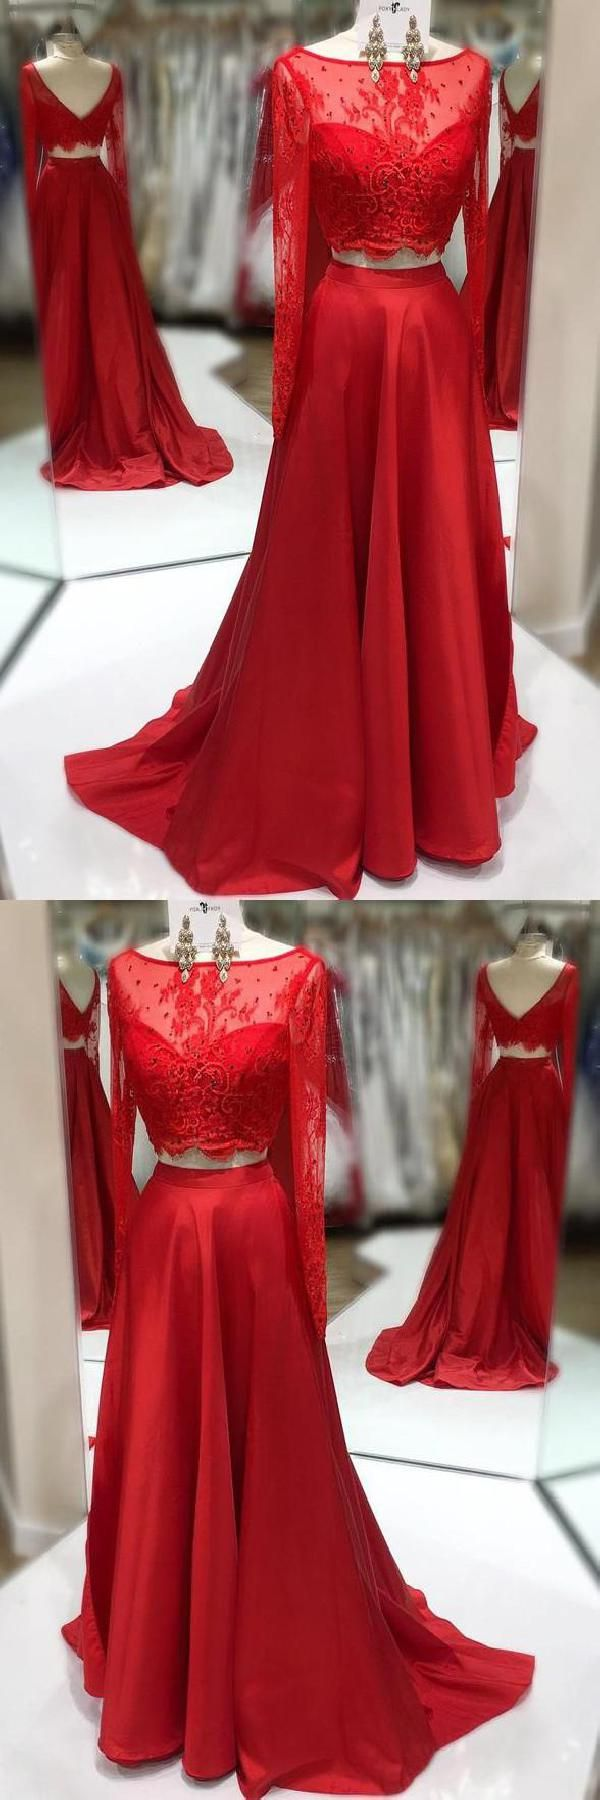 Outlet luscious two pieces party dresses lace red prom dresses